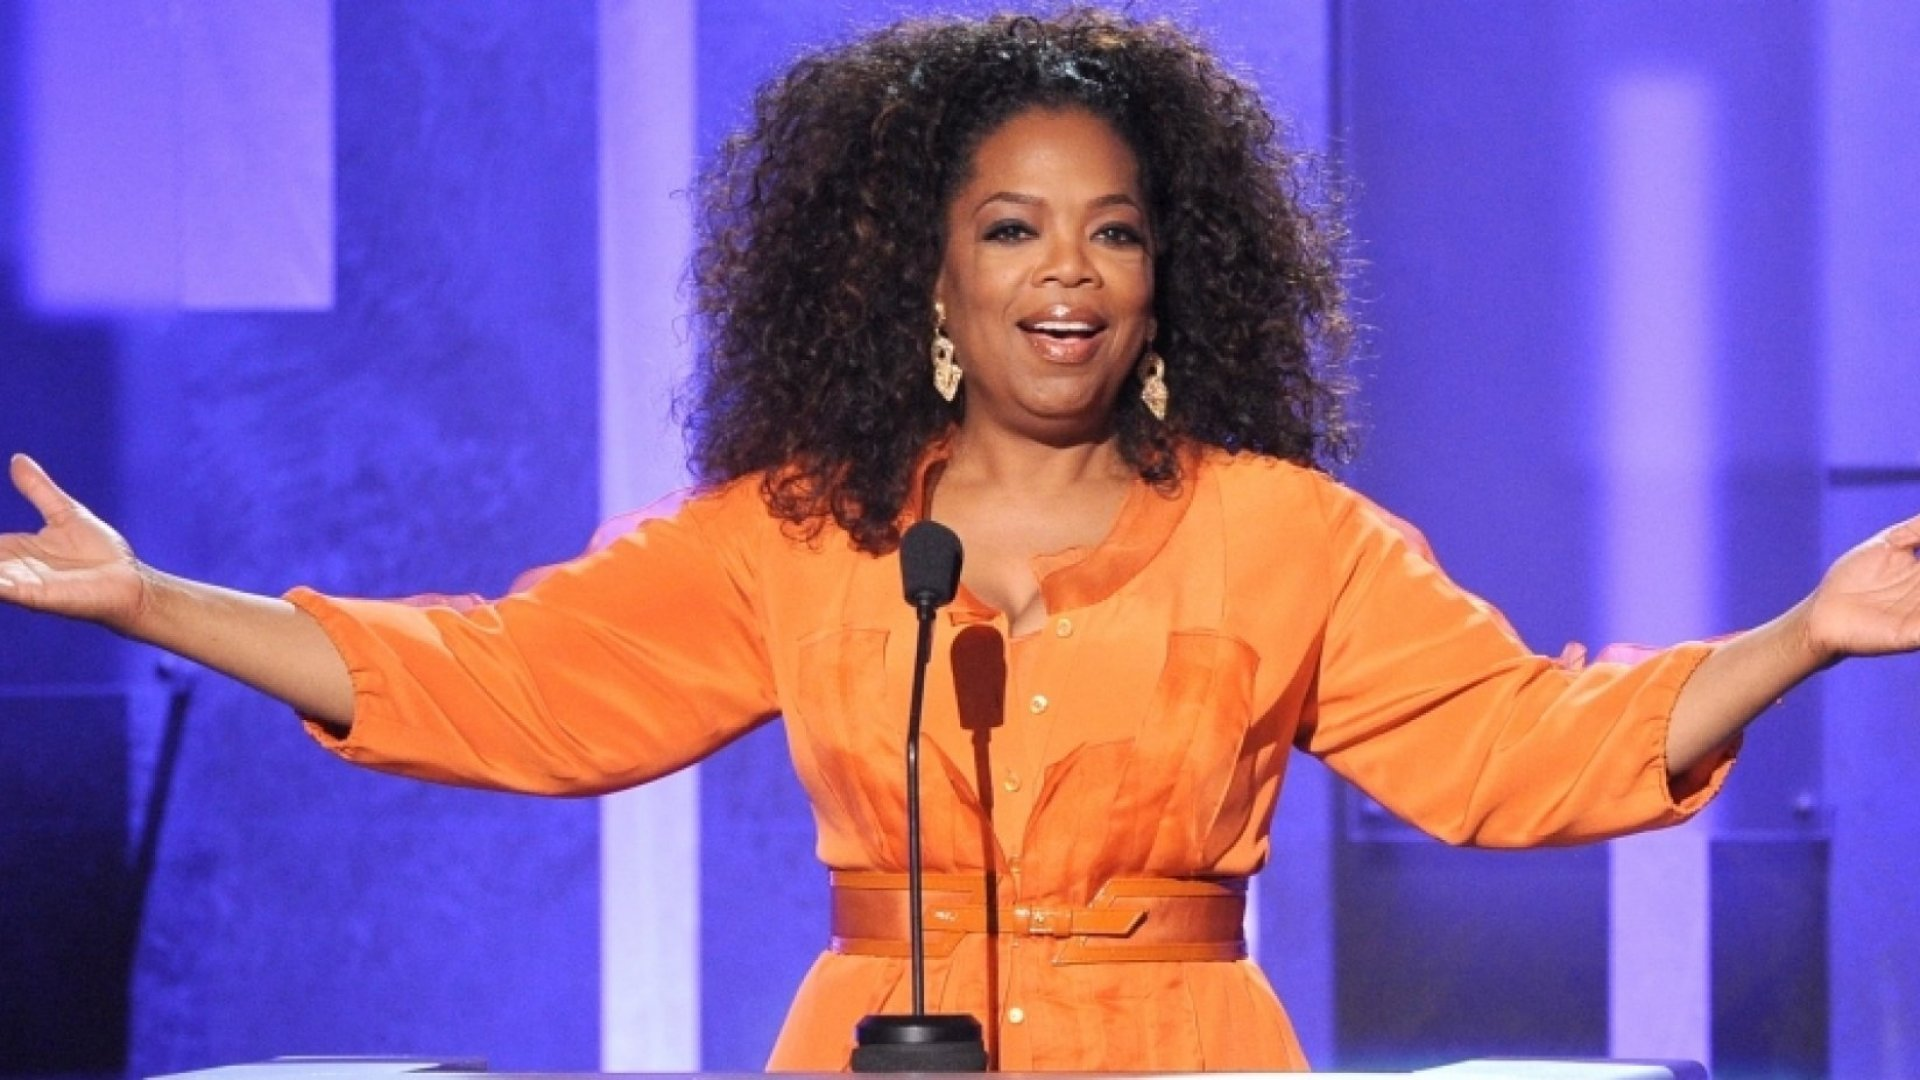 Oprah's Real Secret to Success May Not Be What You Think It Is